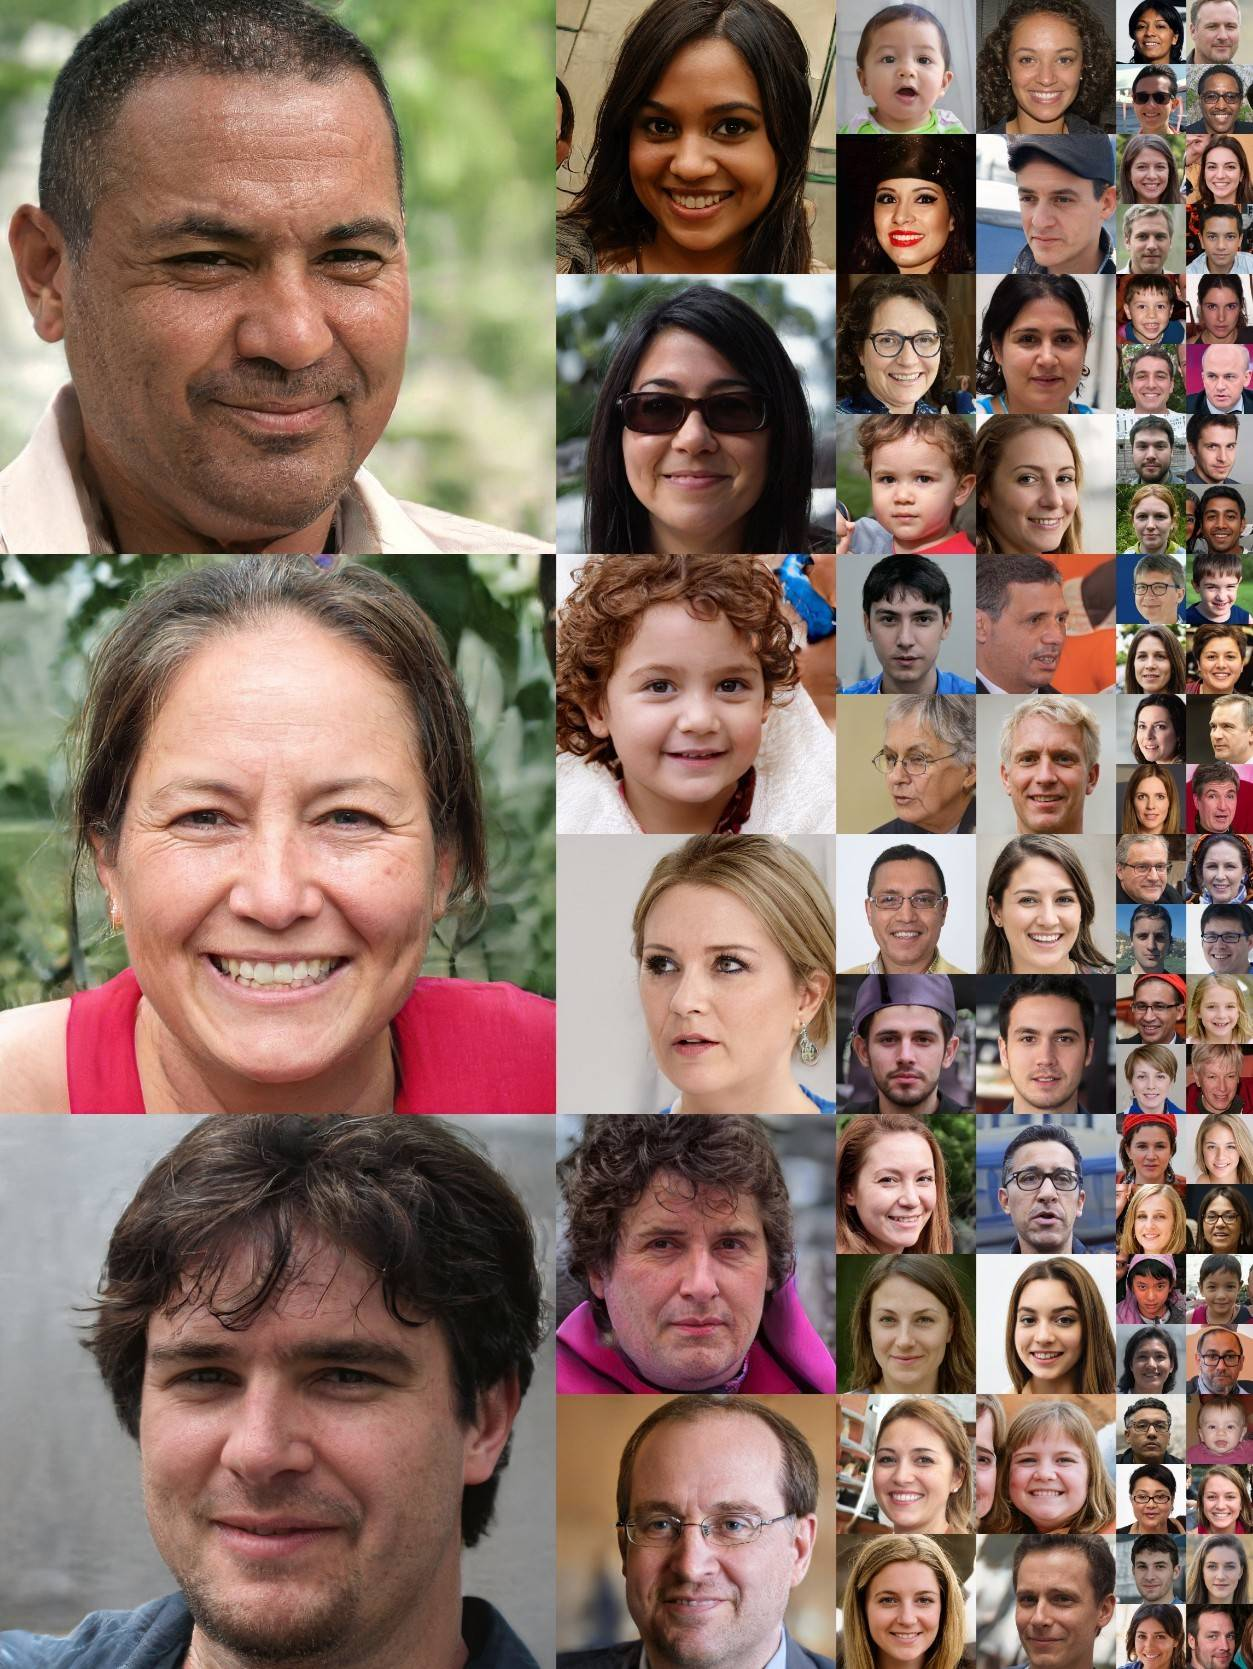 Harassment Valley Harassment: NVIDIA creates an AI that represents the real faces of the real ones